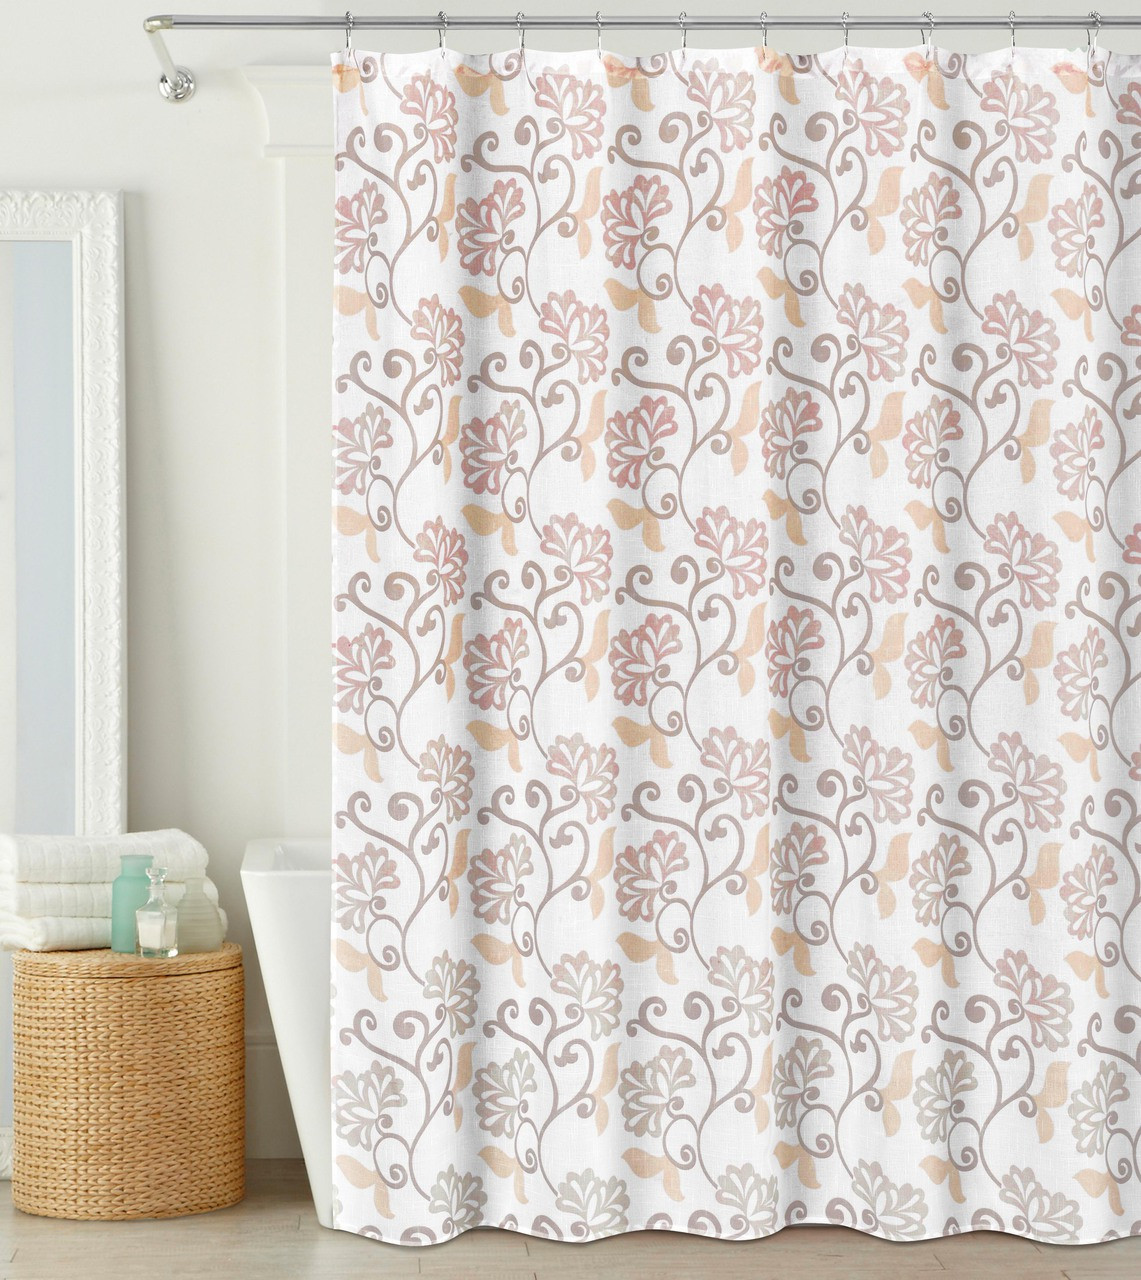 Fabric Shower Curtain Semi Sheer Blush And Off White Floral Design 70 X 72